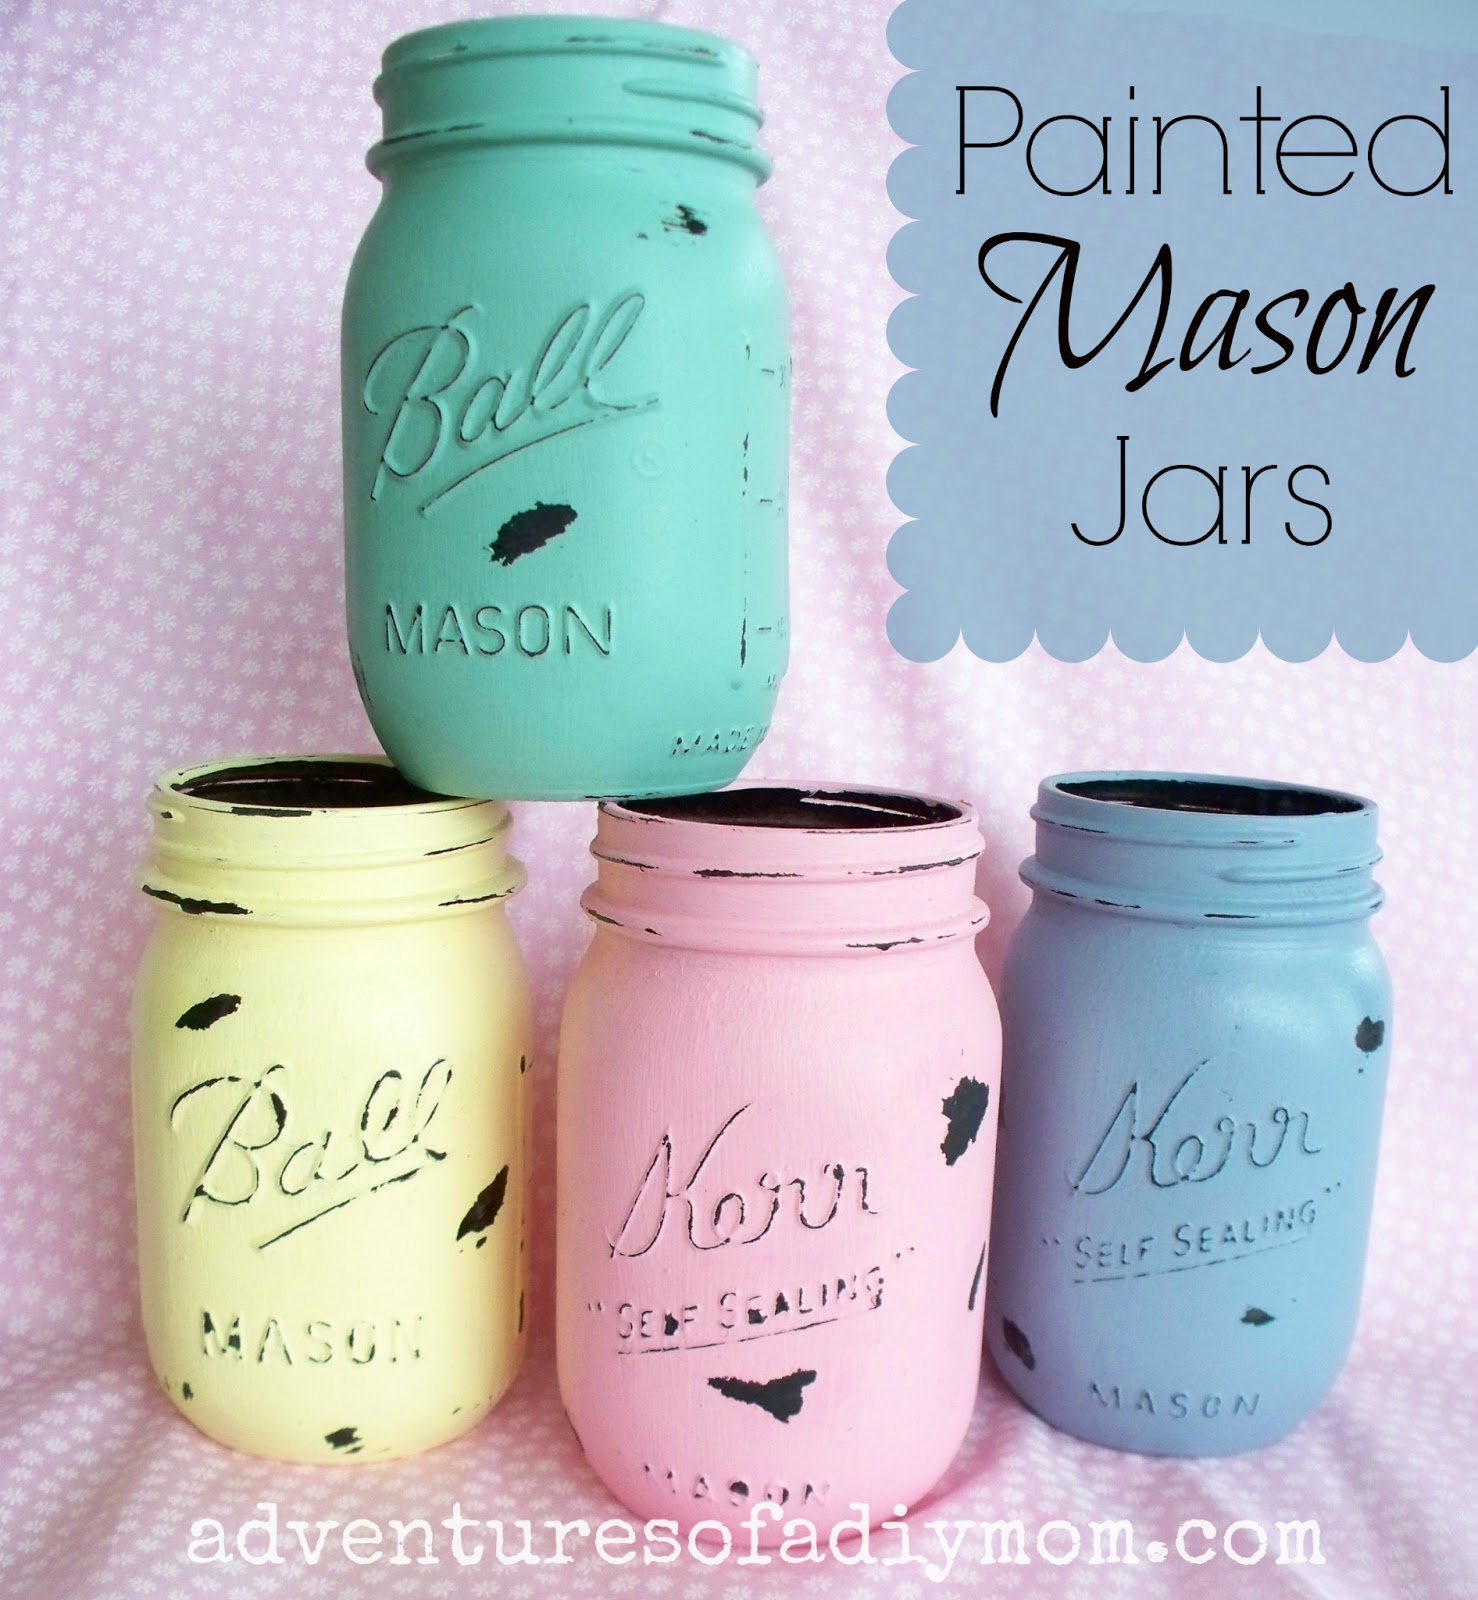 mason jars painted - photo #36